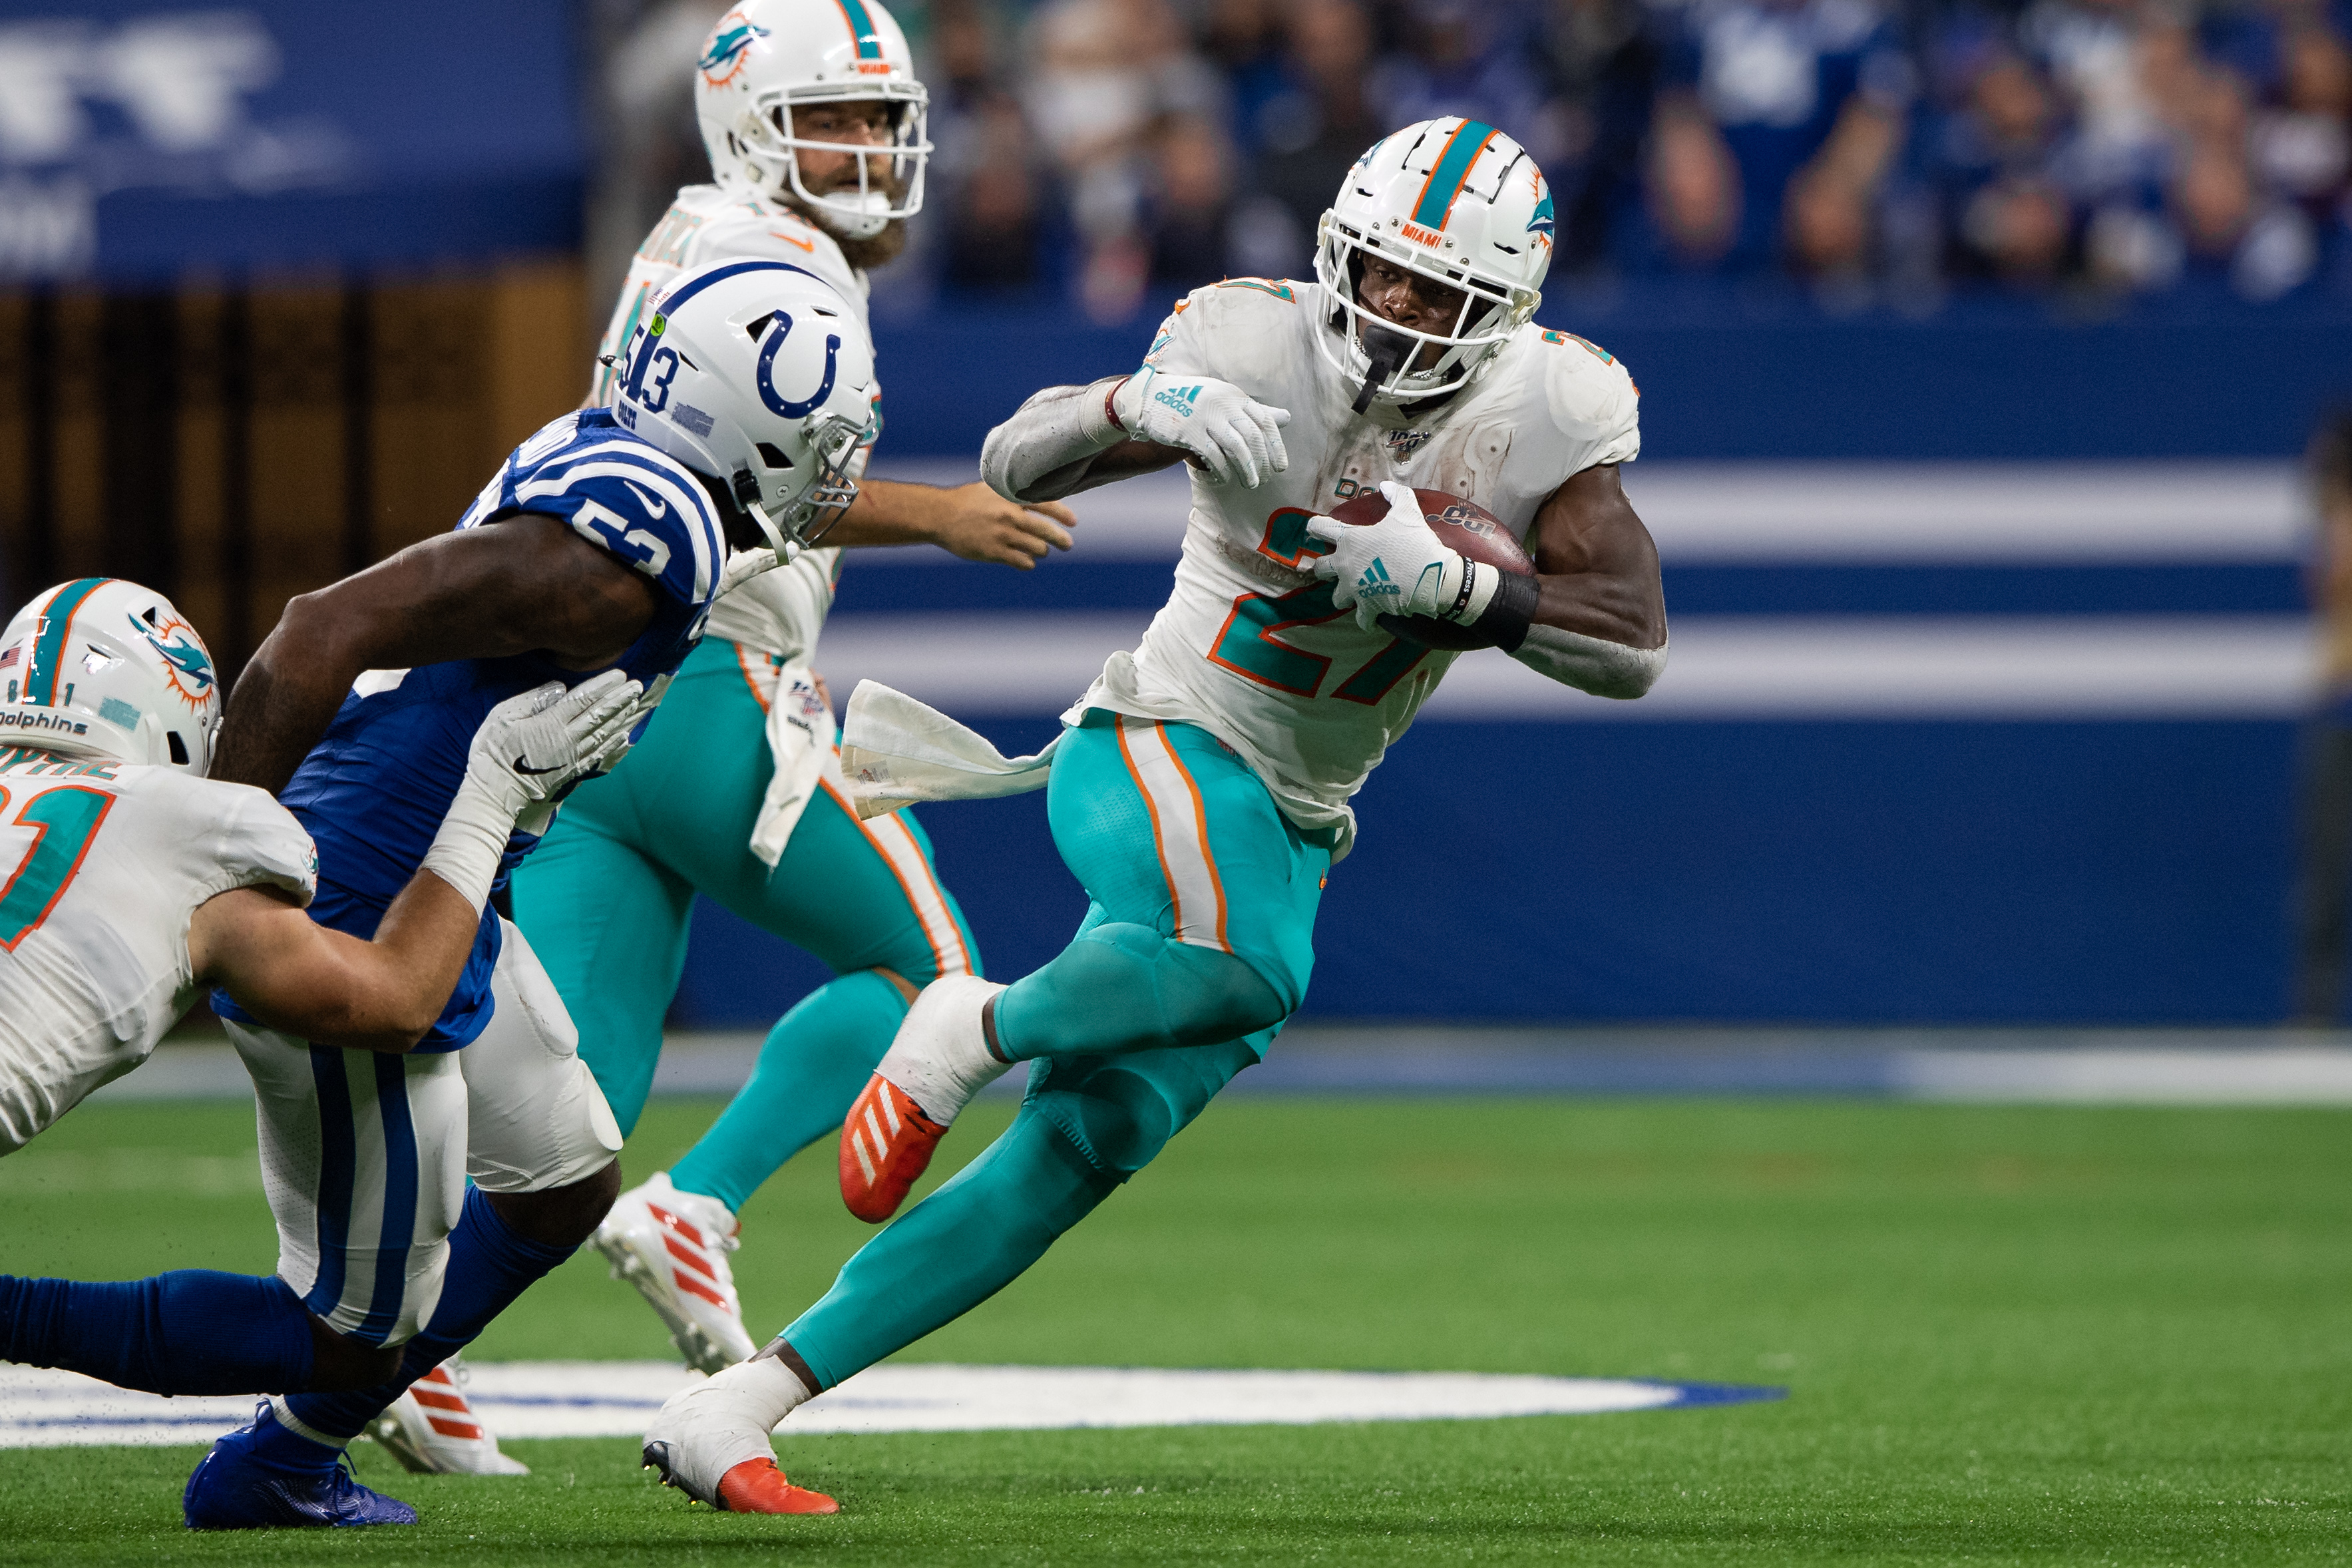 NFL: NOV 10 Dolphins at Colts